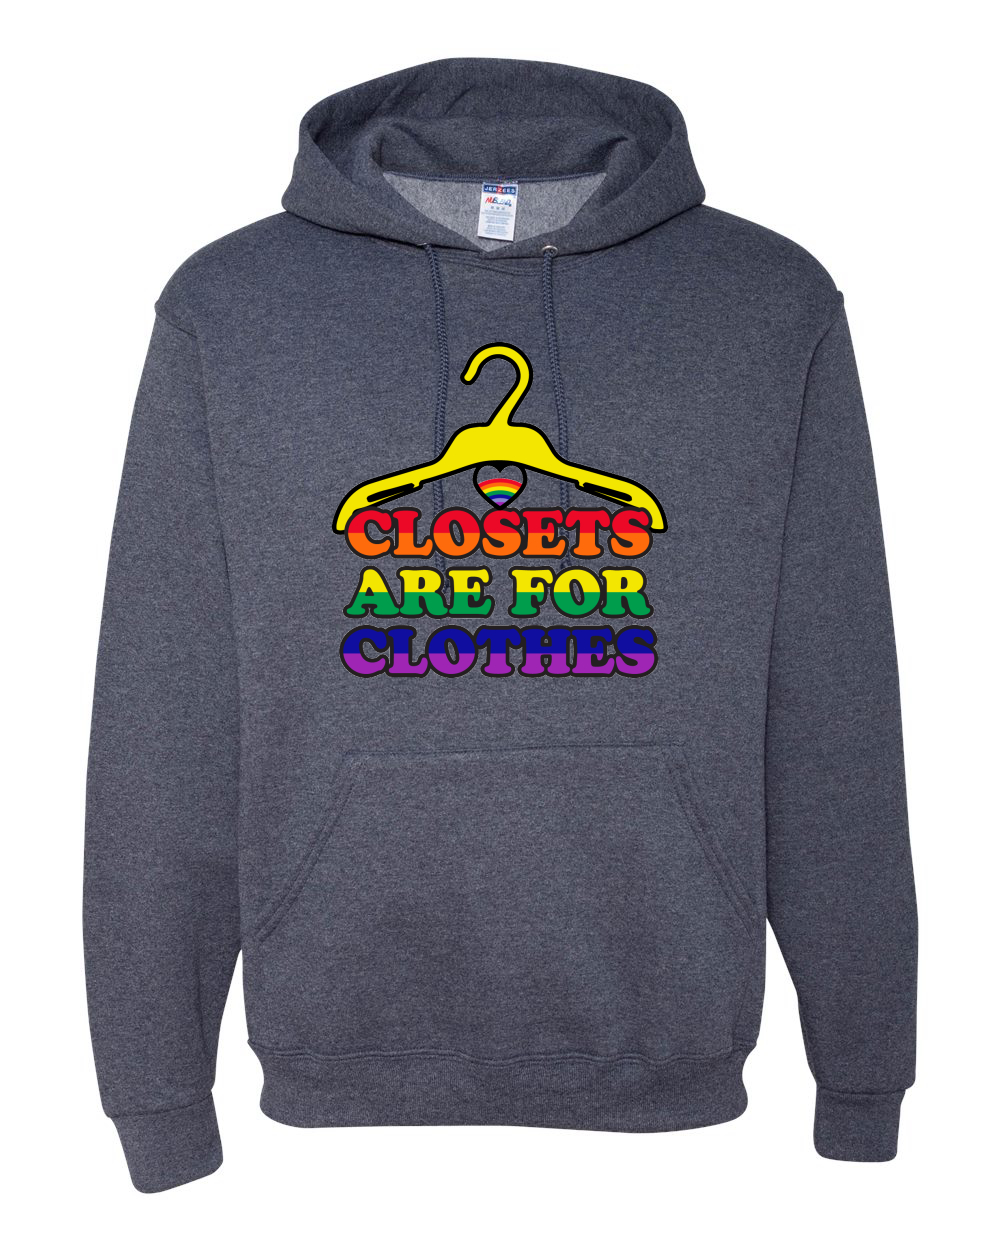 daad91eae80 Closests Are For Clothes LGBT Pride Sweatshirt Gay Bi Trans Hoodie ...